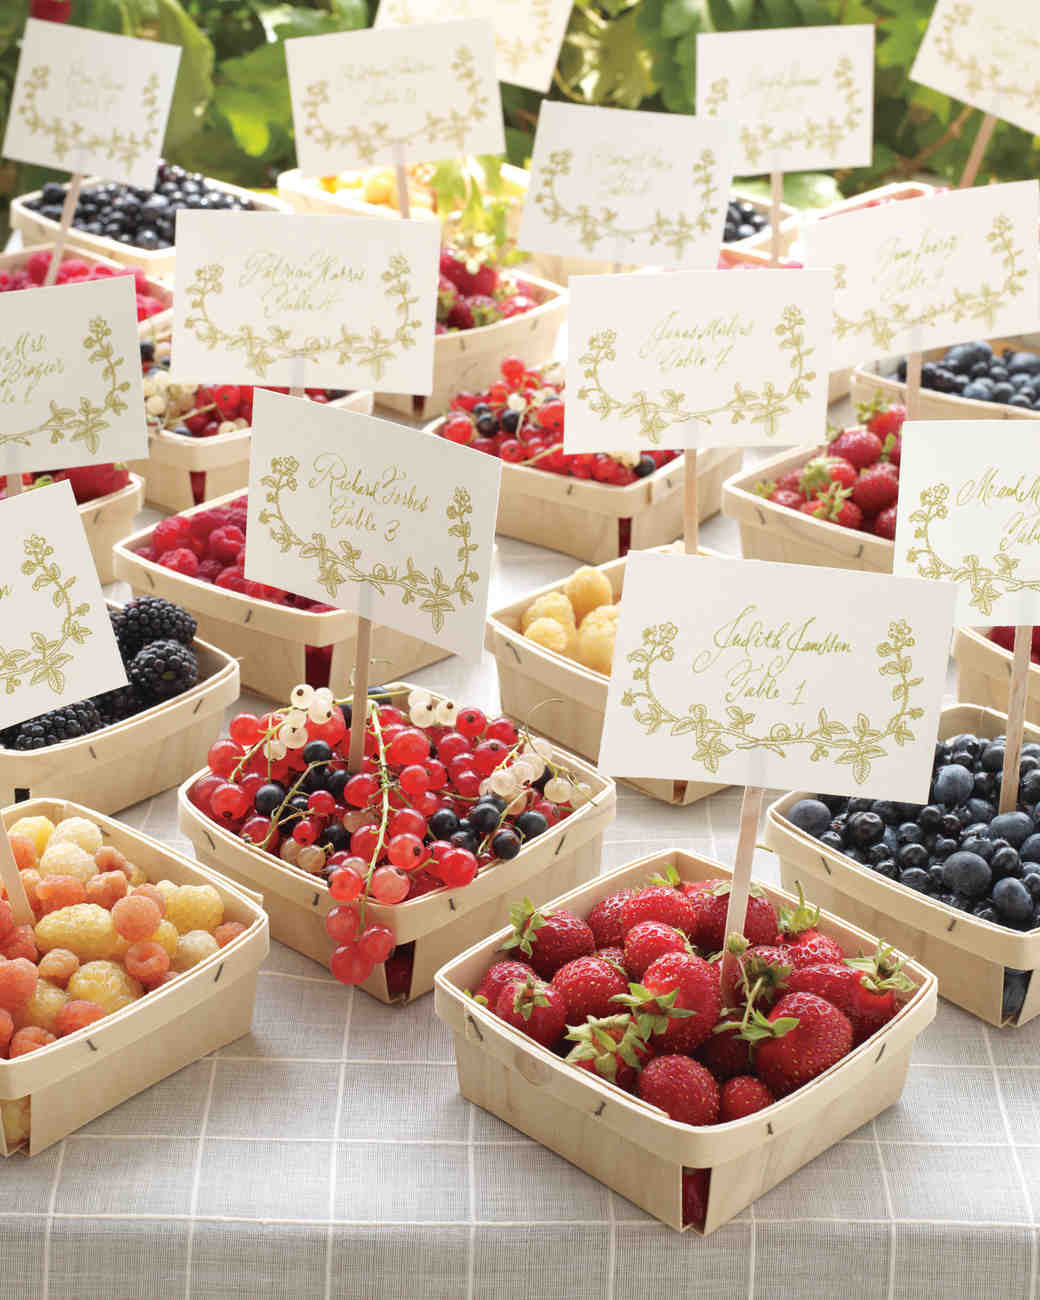 DIY Summer Wedding Ideas | Martha Stewart Weddings